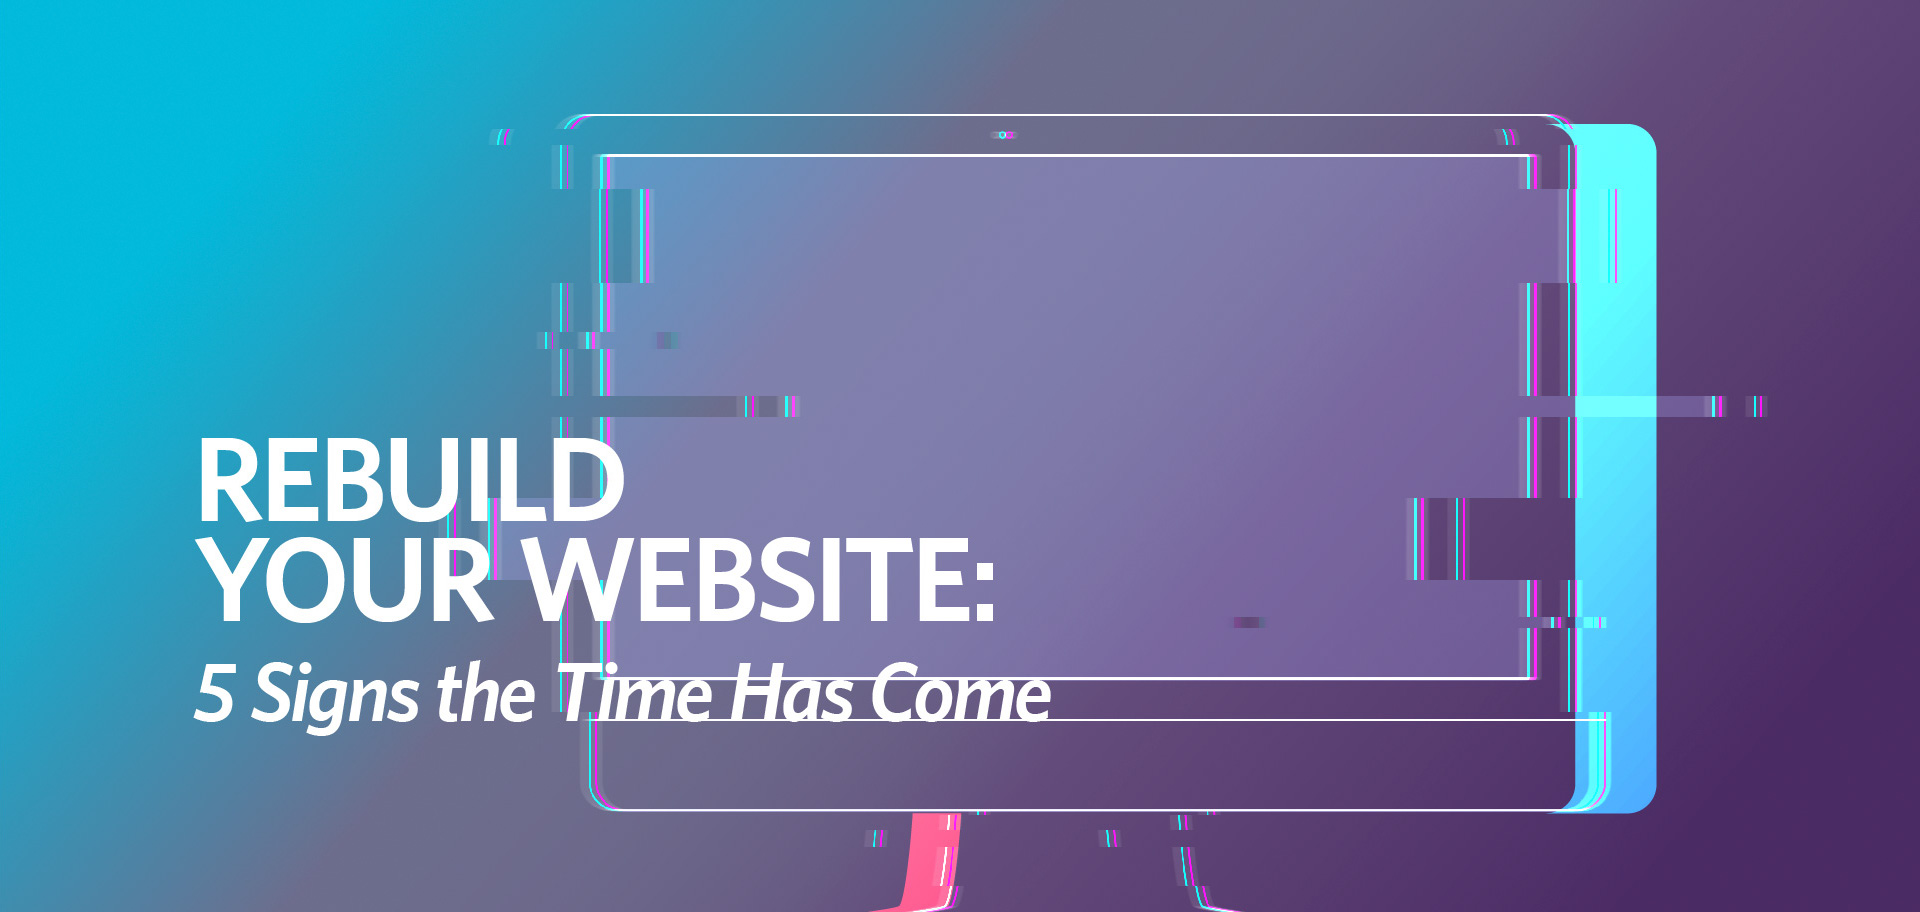 rebuild your website Kettle Fire Creative blog web developer rebuild your website Rebuild Your Website: 5 Signs the Time Has Come [infographic] website redo fi